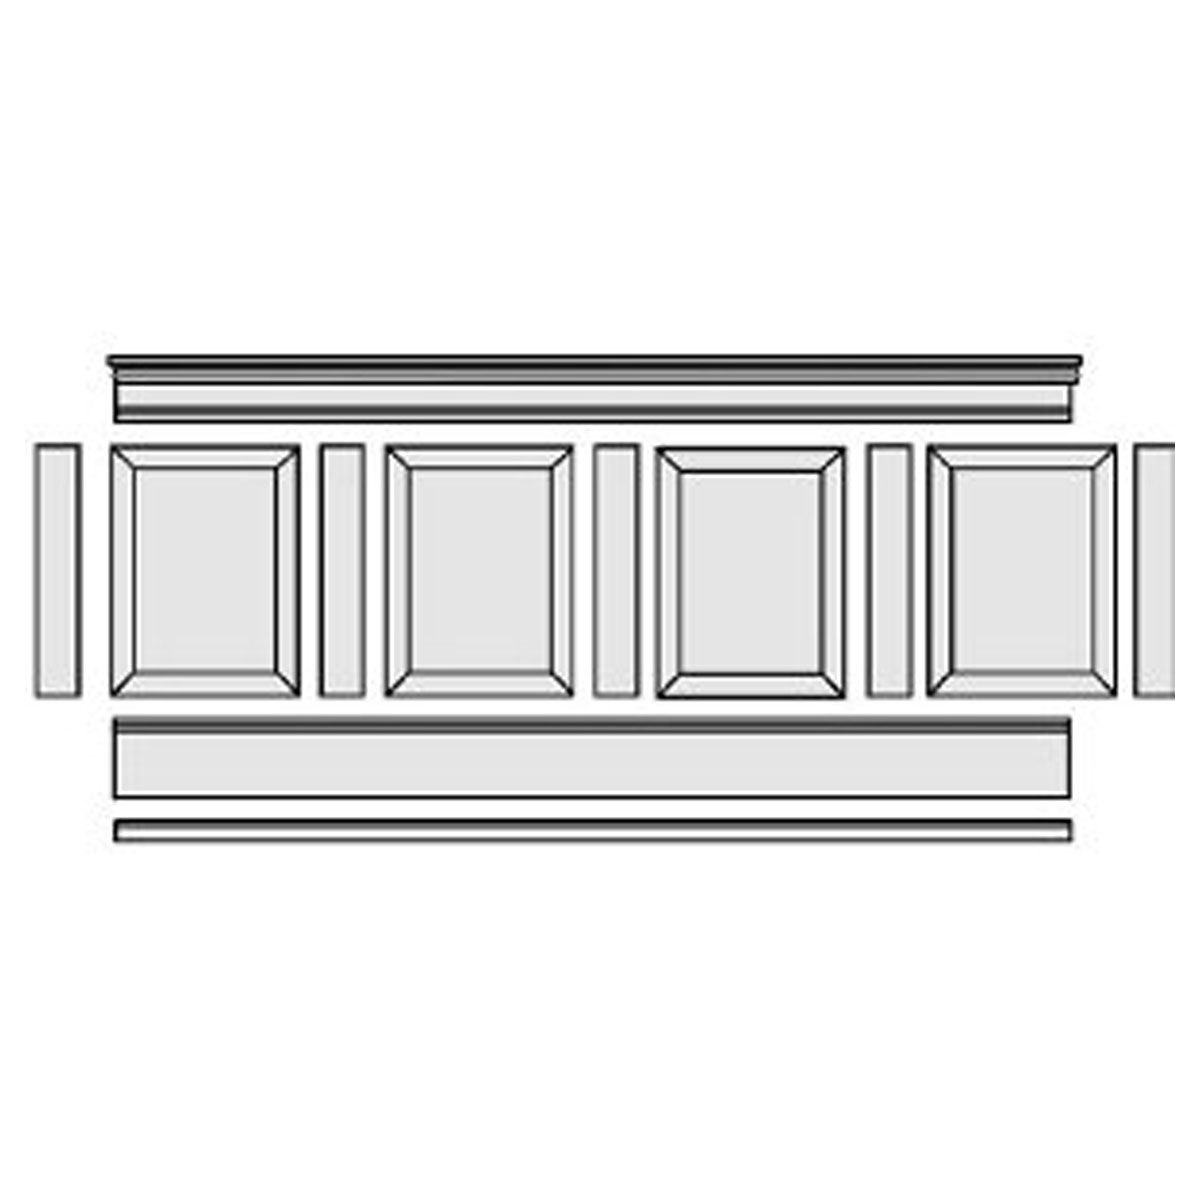 37-Inch H x 96-Inch L Adjustable Height Raised Panel Wainscoting Kit on raised panel walls, raised panel fireplace mantels, wainscot kits, raised panel wallpaper, kitchen kits,